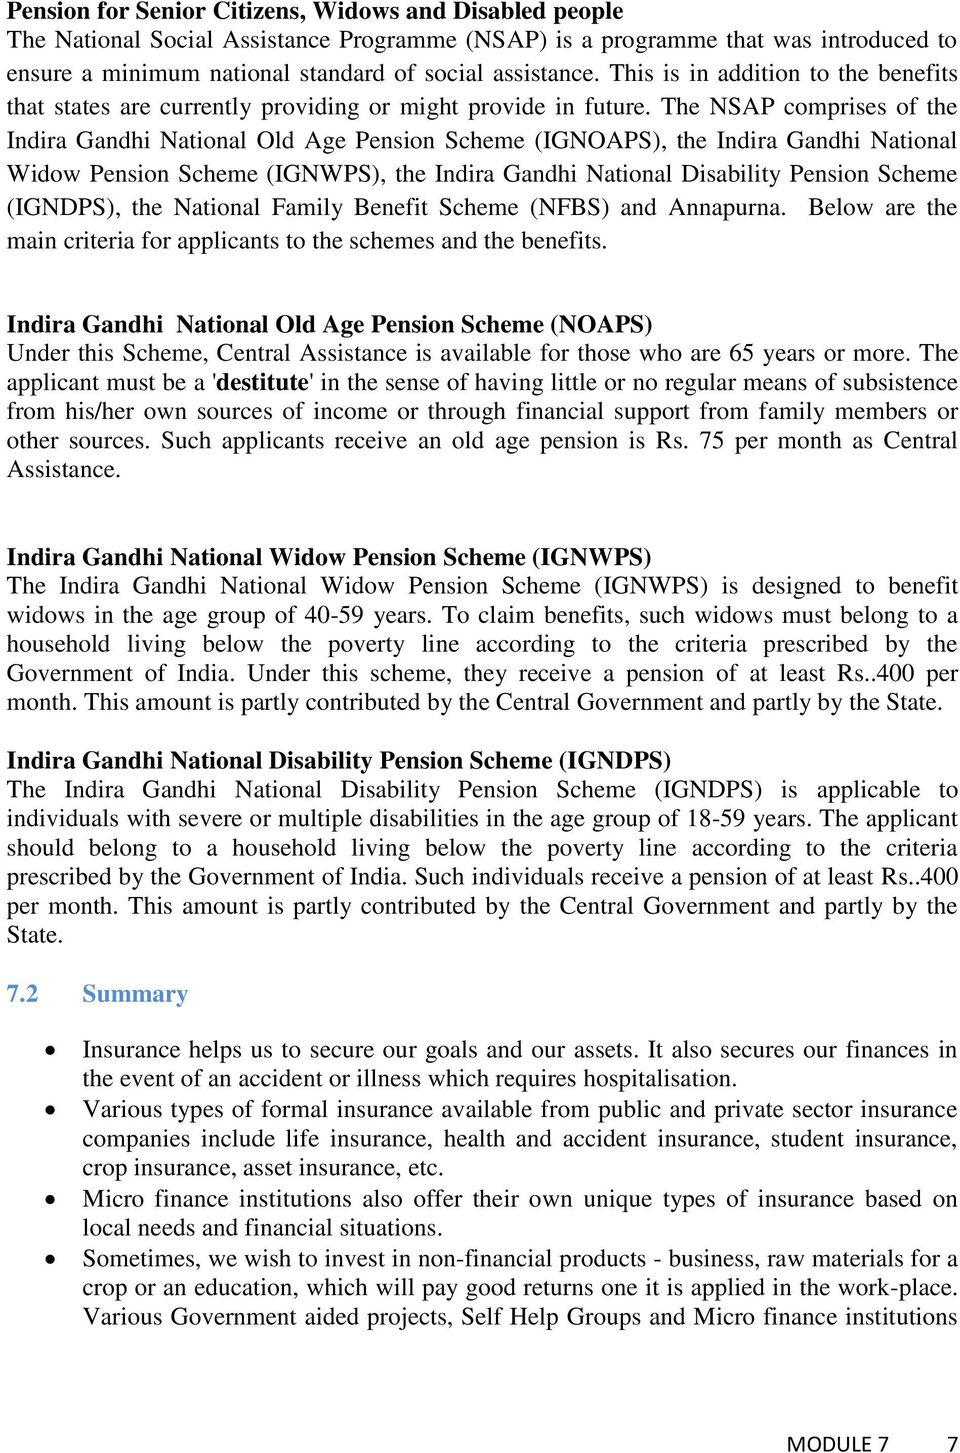 The NSAP comprises of the Indira Gandhi National Old Age Pension Scheme (IGNOAPS), the Indira Gandhi National Widow Pension Scheme (IGNWPS), the Indira Gandhi National Disability Pension Scheme